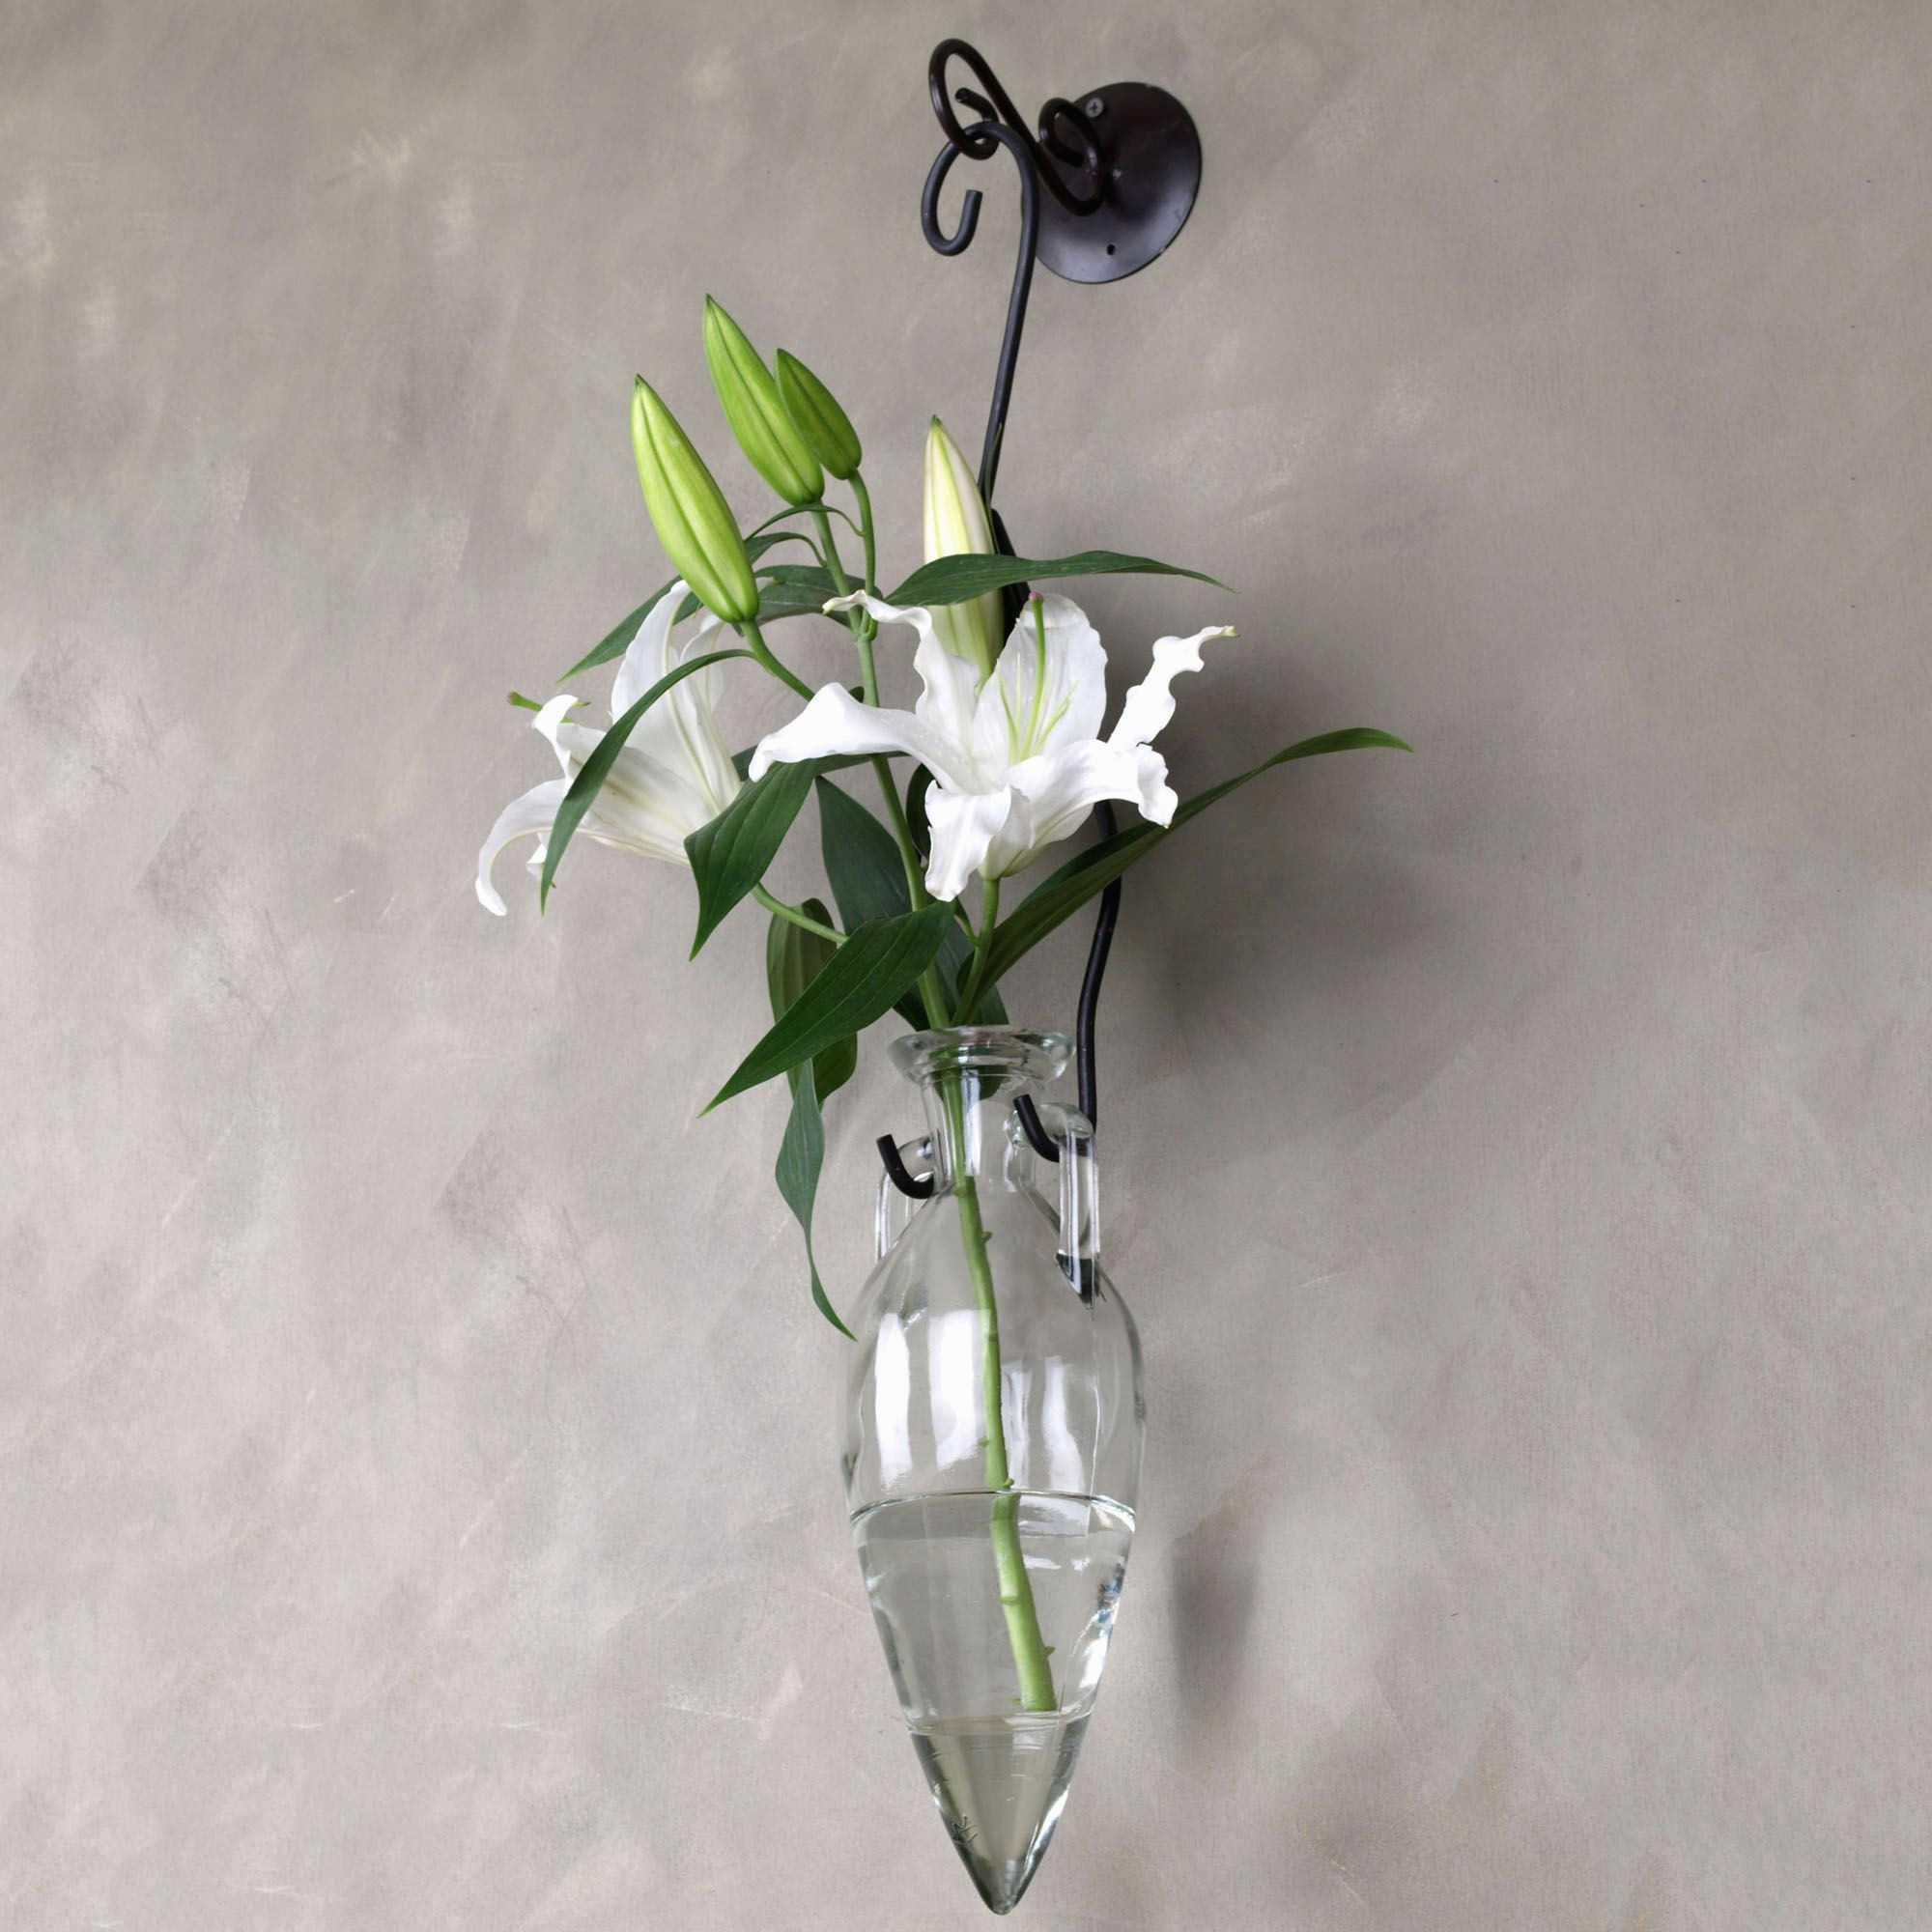 lotus flower vase of beautiful vases metal flower vase woven wire lamp i 0d wall piece in with regard to awesome h vases wall hanging flower vase newspaper i 0d scheme wall scheme of beautiful vases